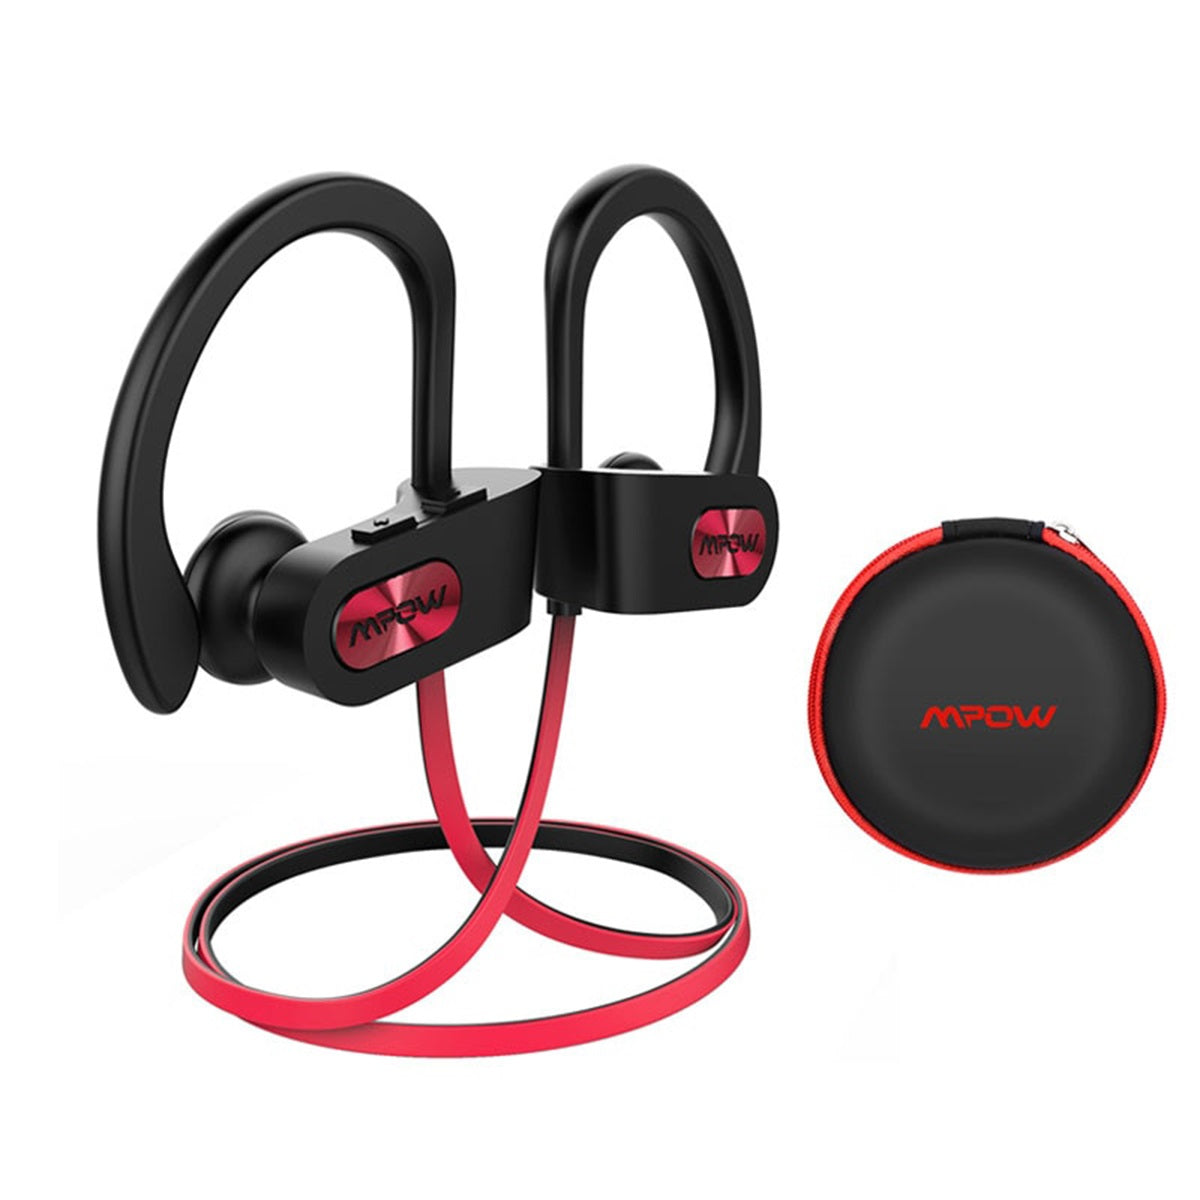 Noise Cancelling Wireless Sports Earbuds